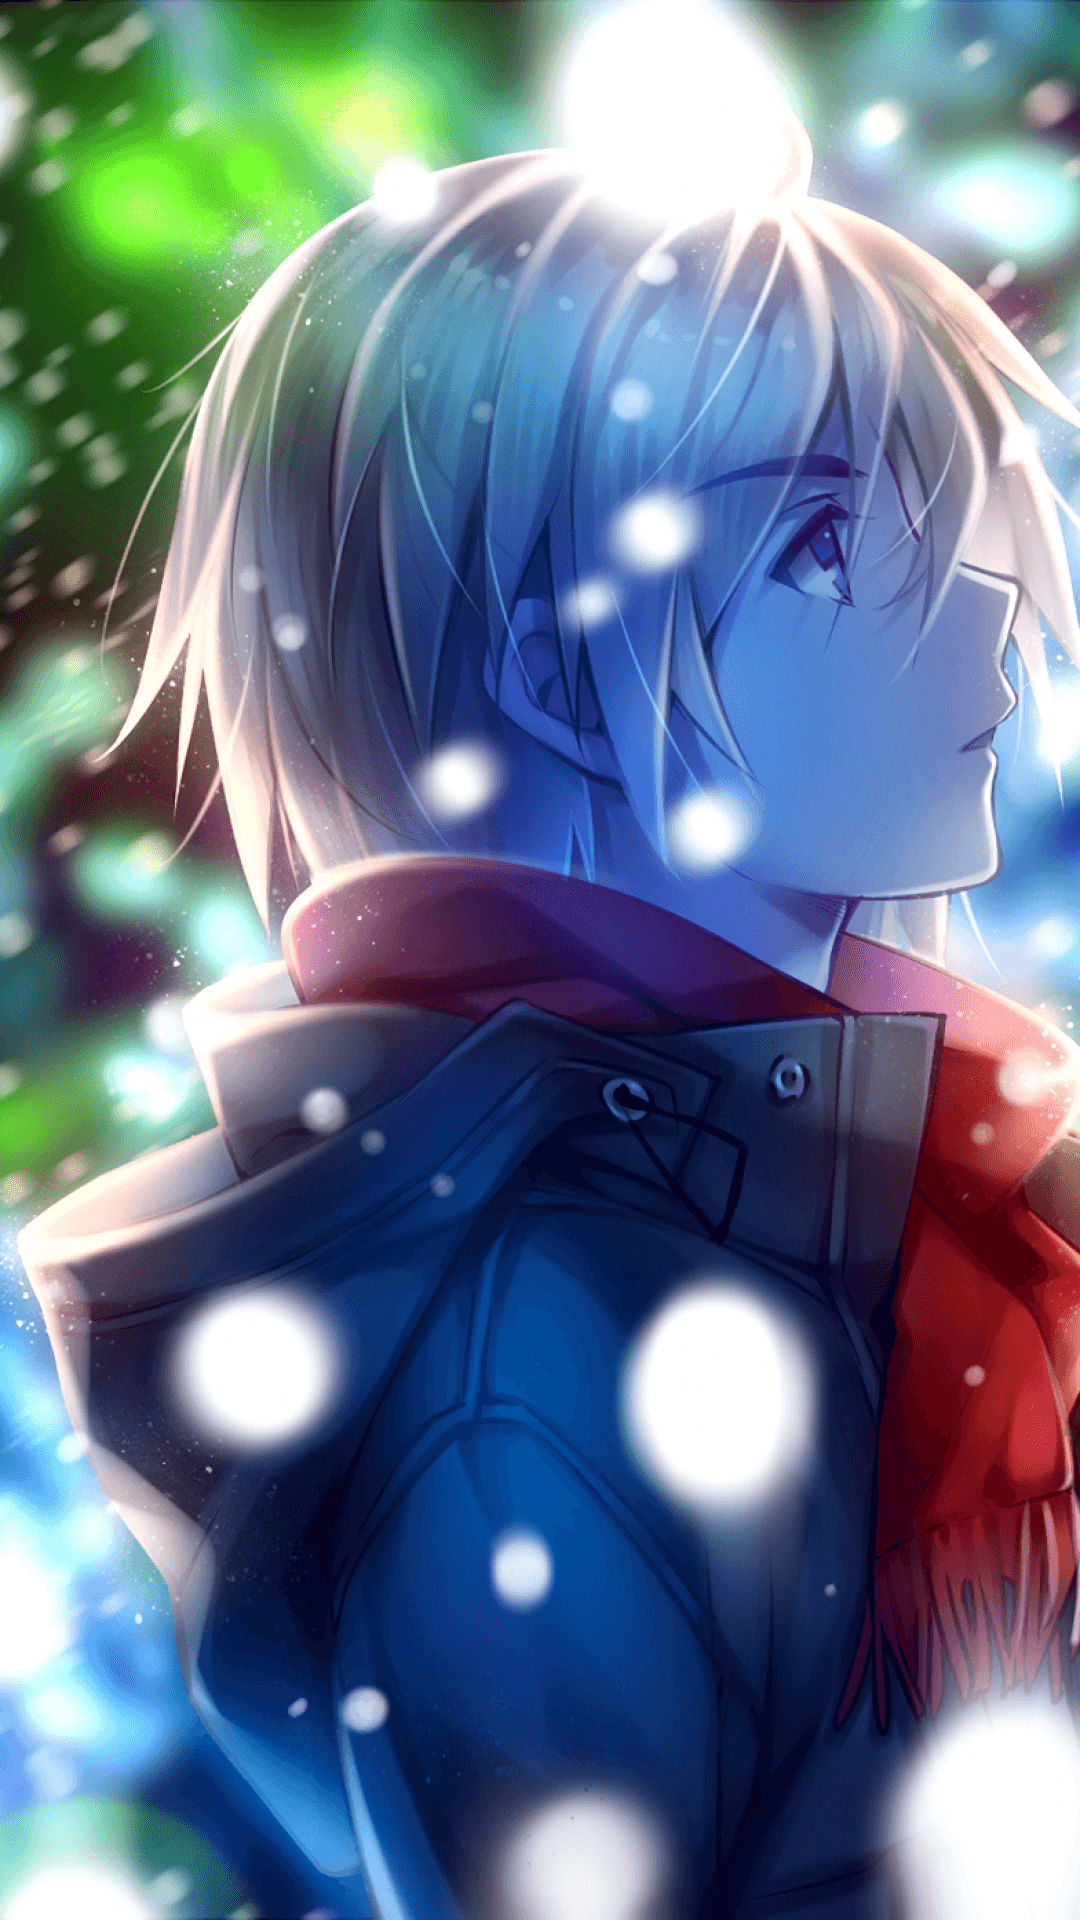 Cute Anime Boys Wallpapers - Wallpaper Cave